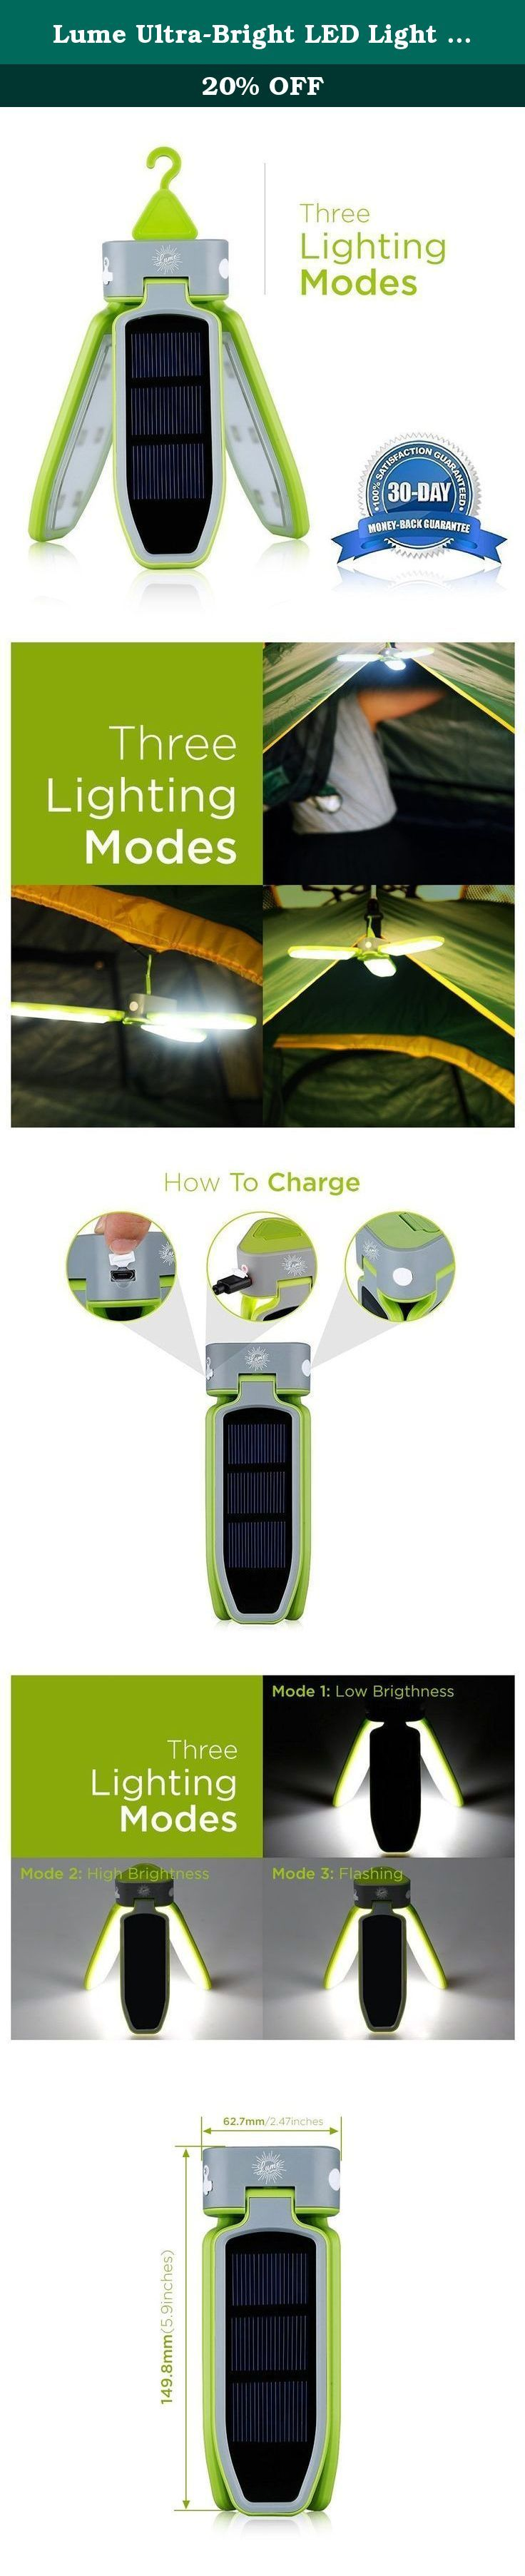 Lume Ultra-Bright LED Light Collapsible Rechargeable Lantern with 18 LED Lights. USB Charging and Solar Panel Chargeable. For Outdoor Camping, Emergency Light, Fishing Lamp. At this time and age, the advances in science and technology has made it possible to harness power from the sun. Solar power is energy that is converted to electrical or thermal. People have become more environmentally conscious and solar power is being utilized at industrial buildings and at home. There are new solar...